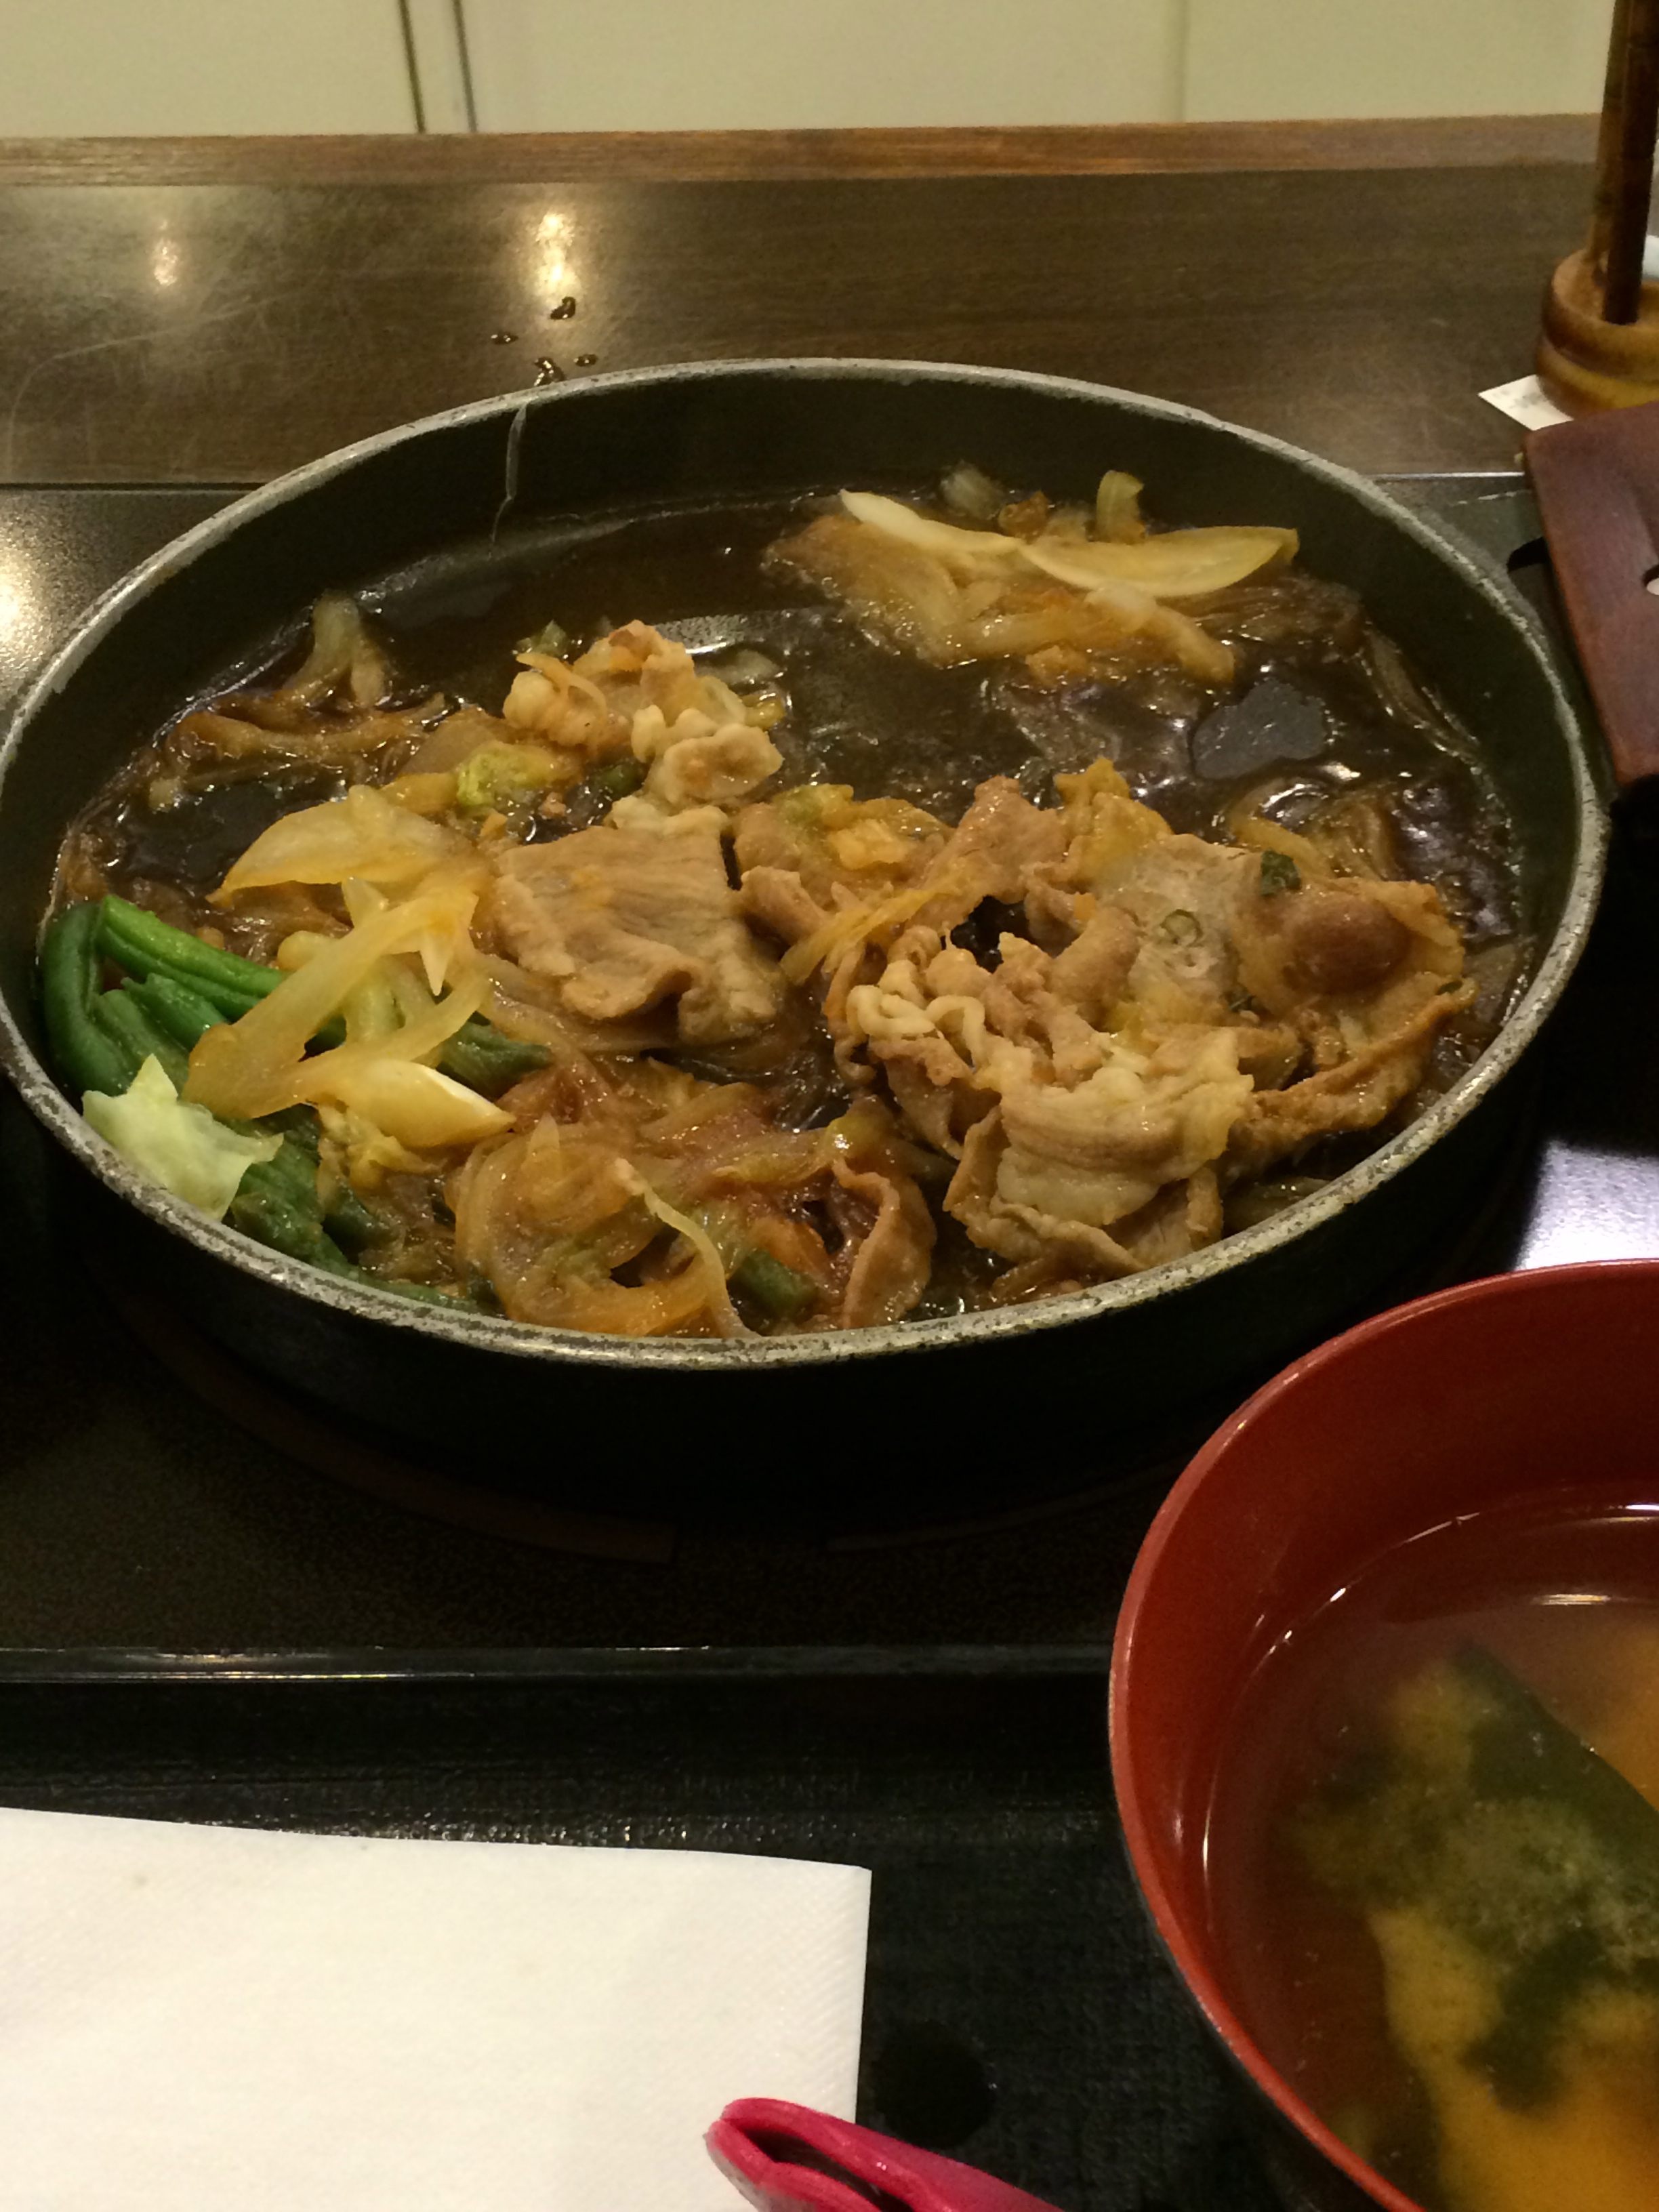 Our first meal in Japan! (Pork Shogayaki).